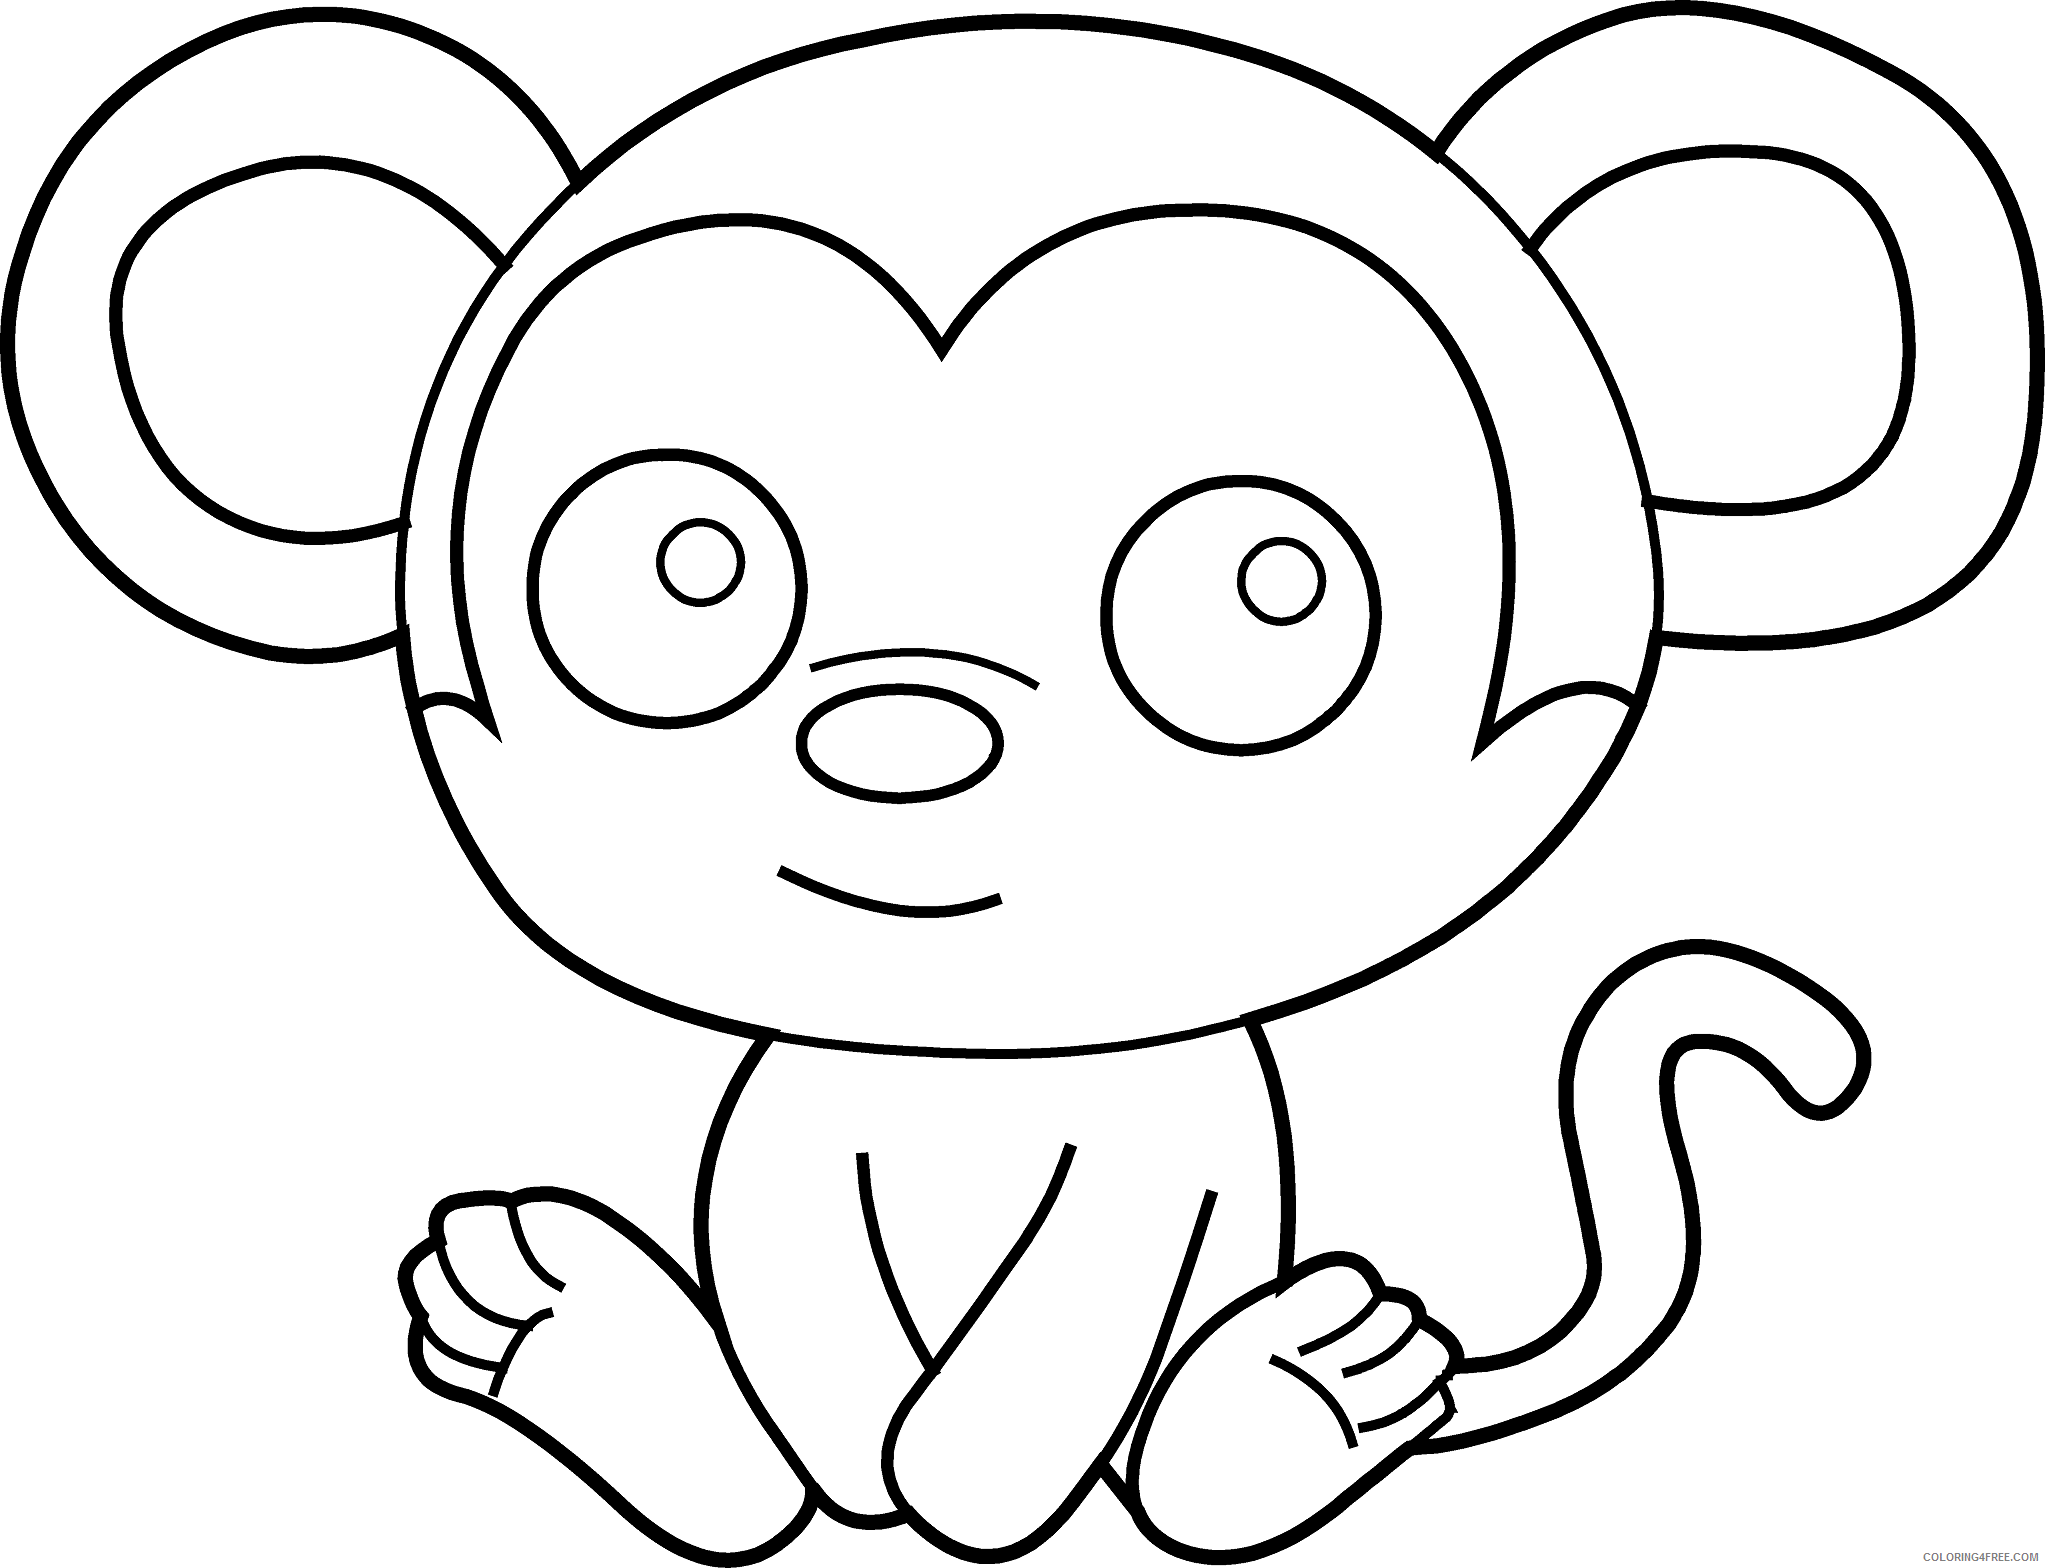 Monkey Coloring Pages baby monkey face clip art Printable Coloring4free